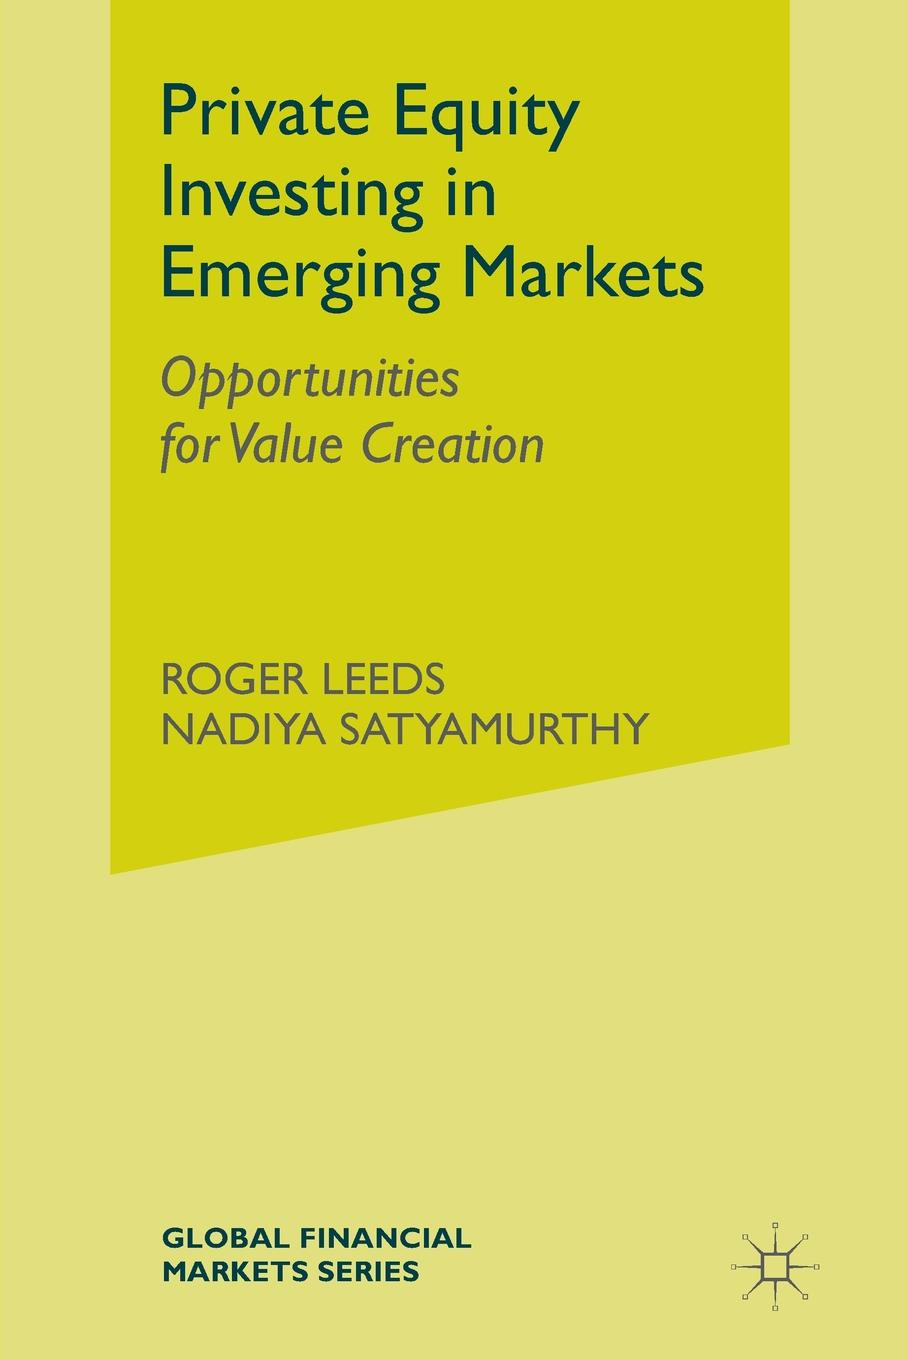 R. Leeds Private Equity Investing in Emerging Markets. Opportunities for Value Creation